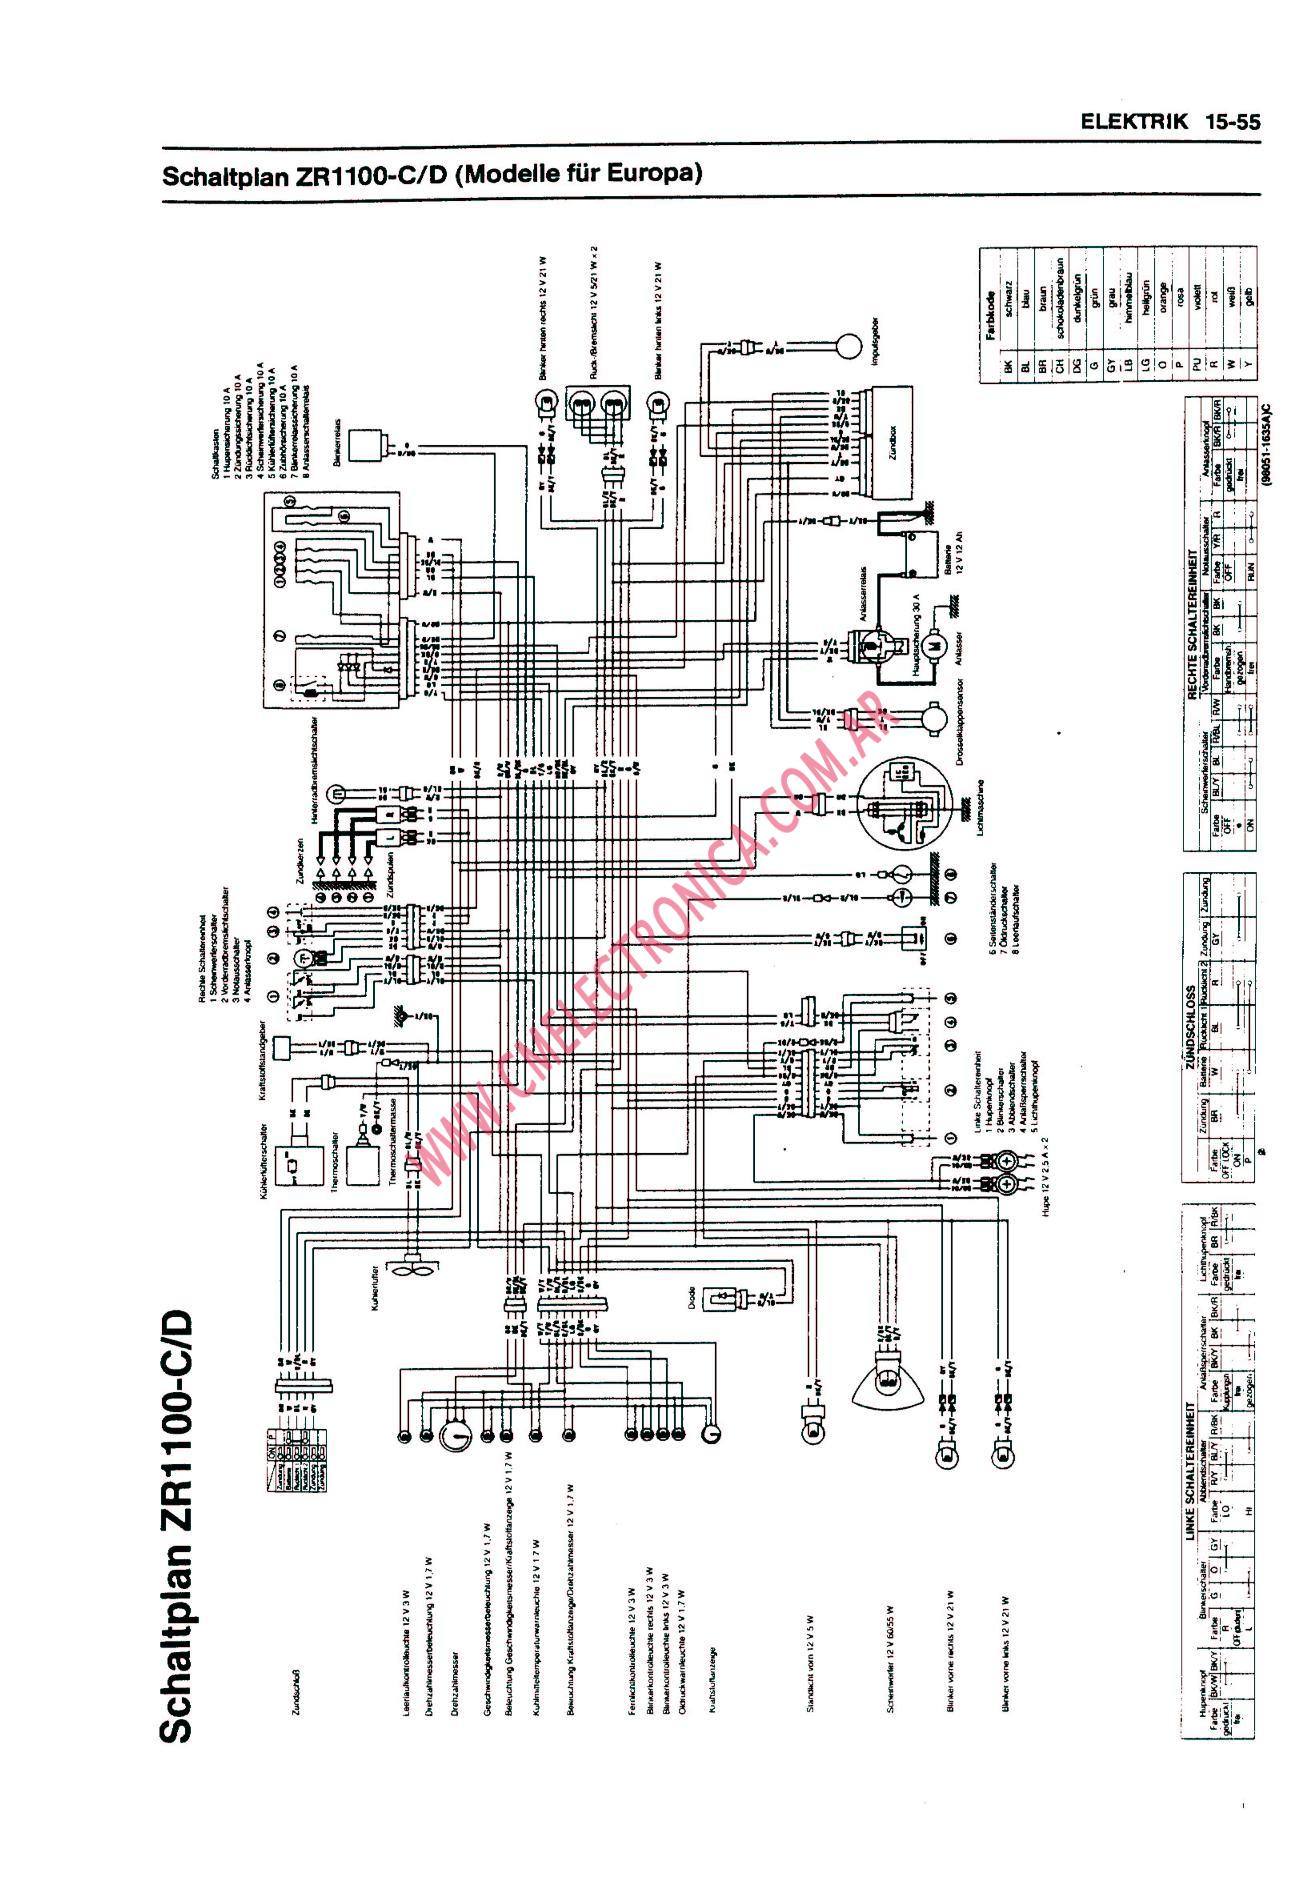 2006 Kawasaki Zx12r Wiring Diagram Best Secret 2000 Zx12 Diagrams Free Engine Image For Zx9r 1200